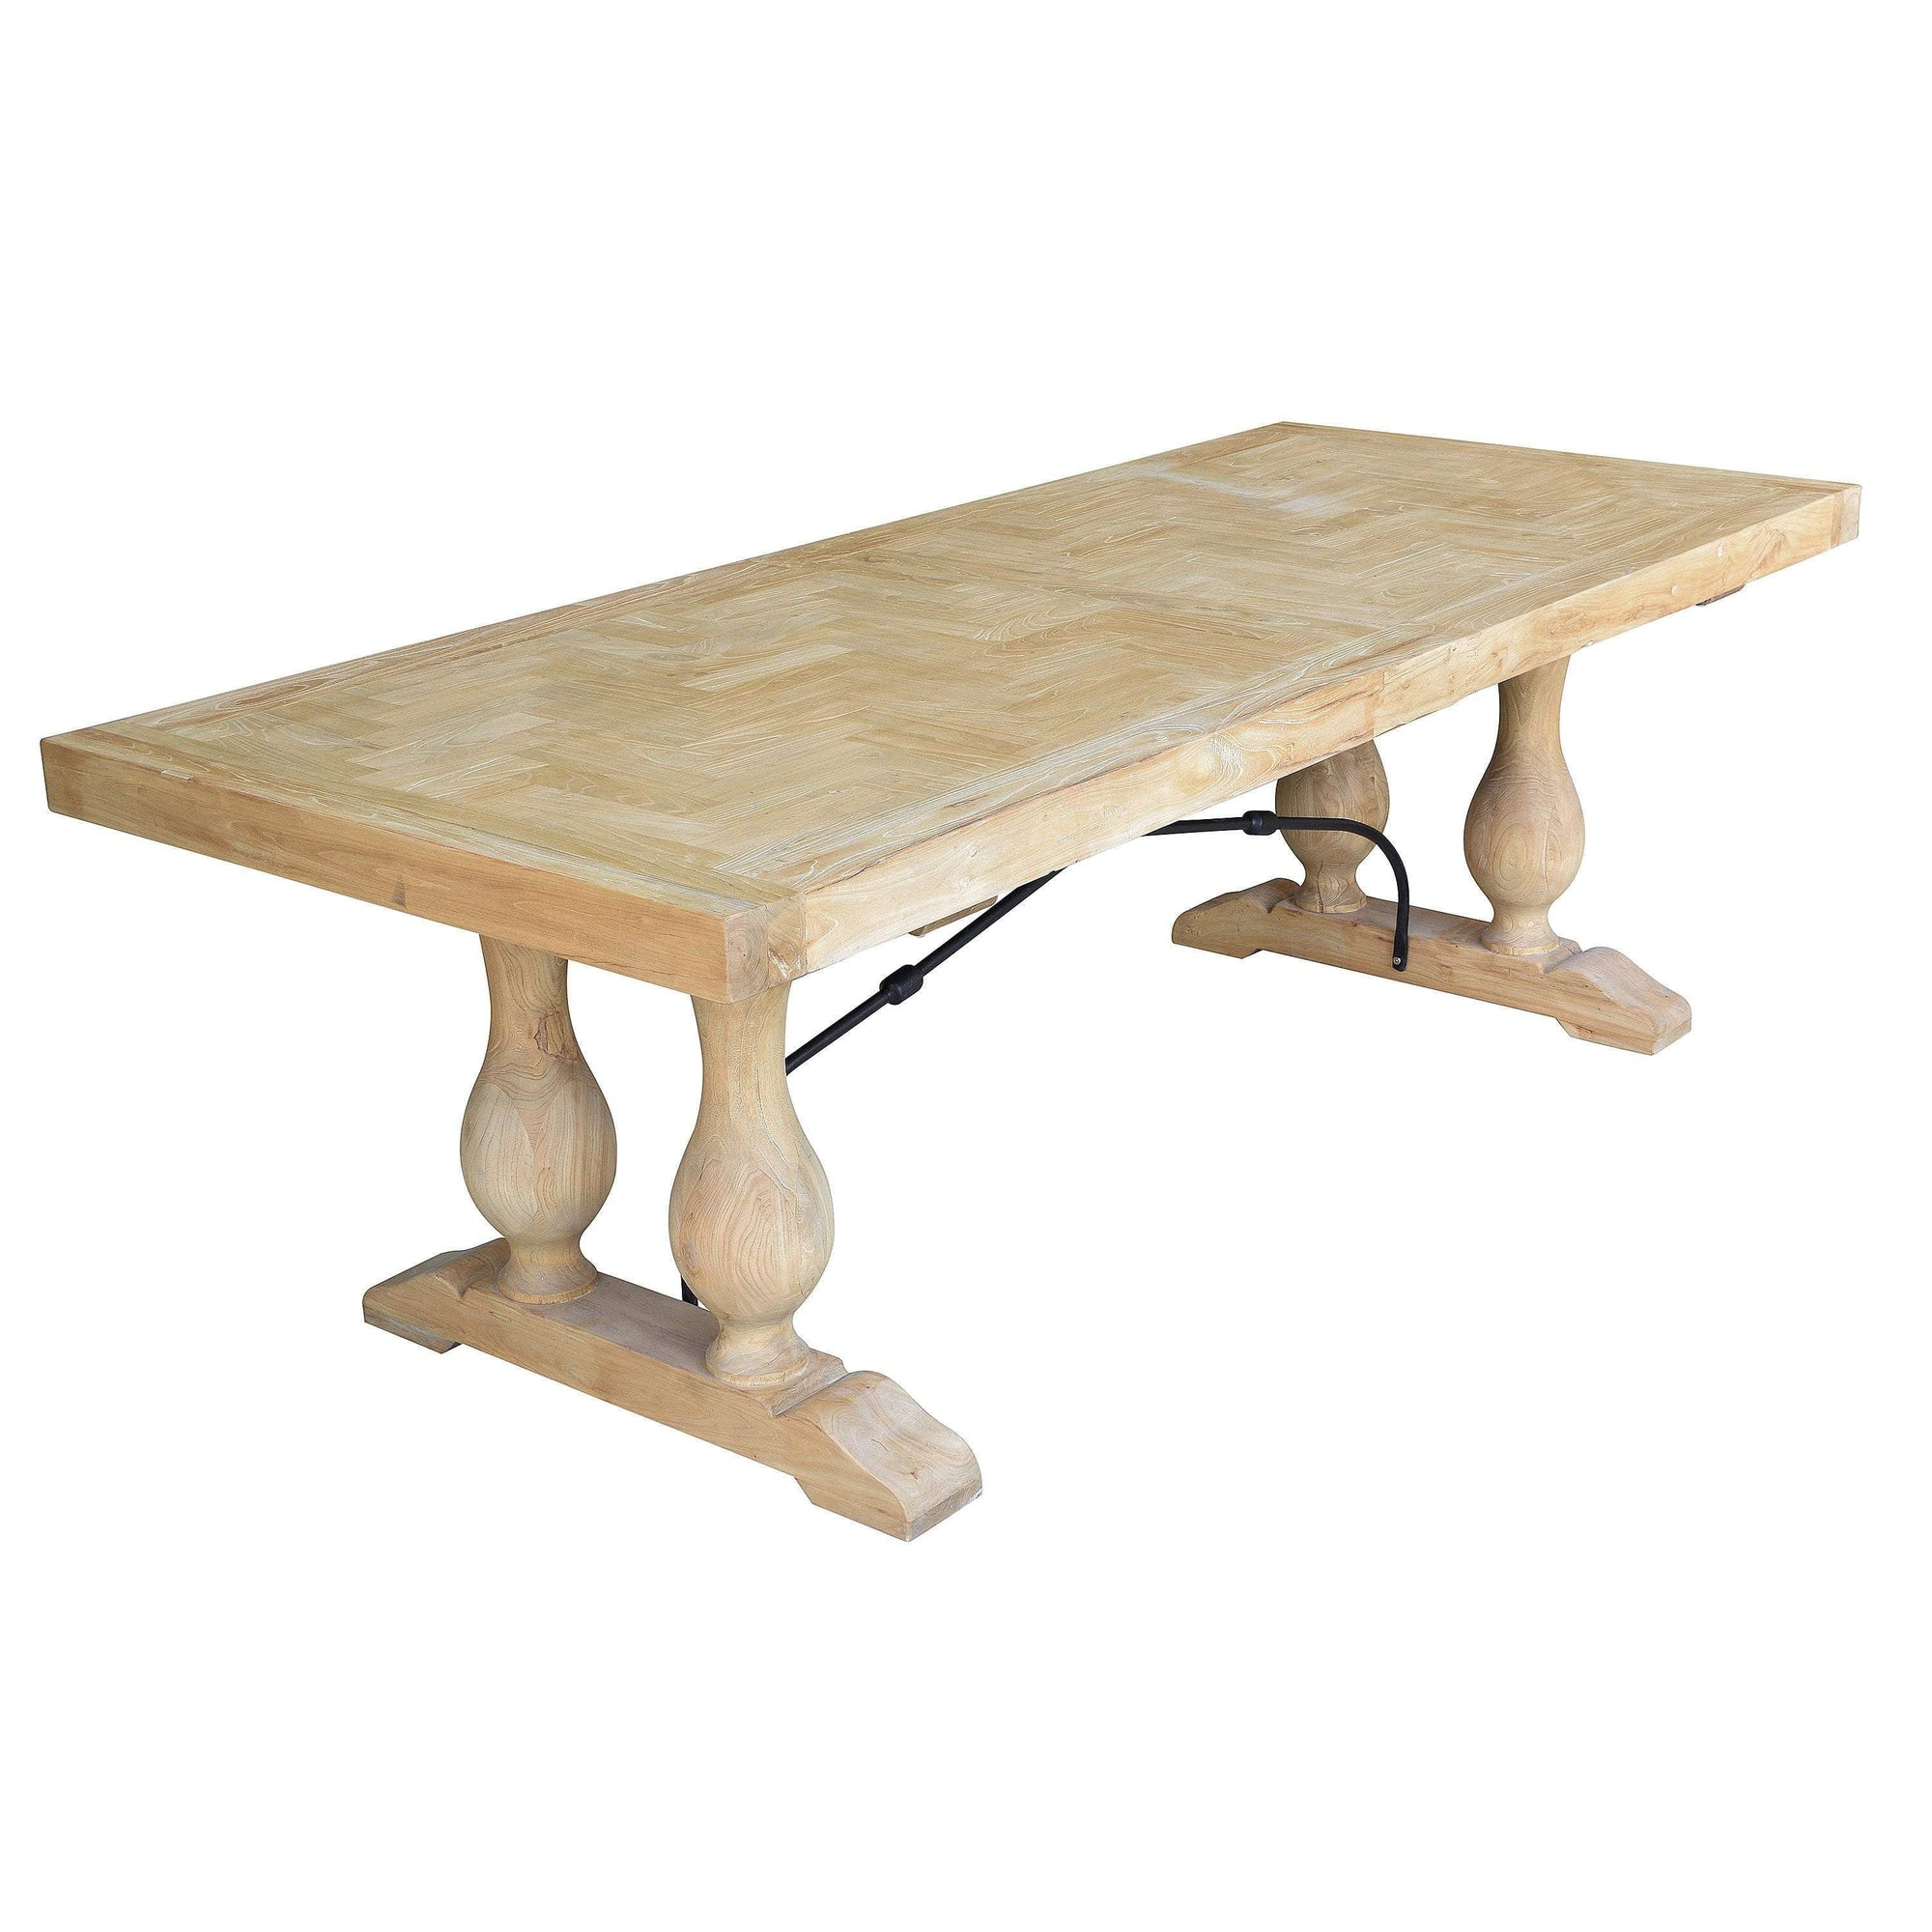 Boston Rustic Dining Table - 2.4m